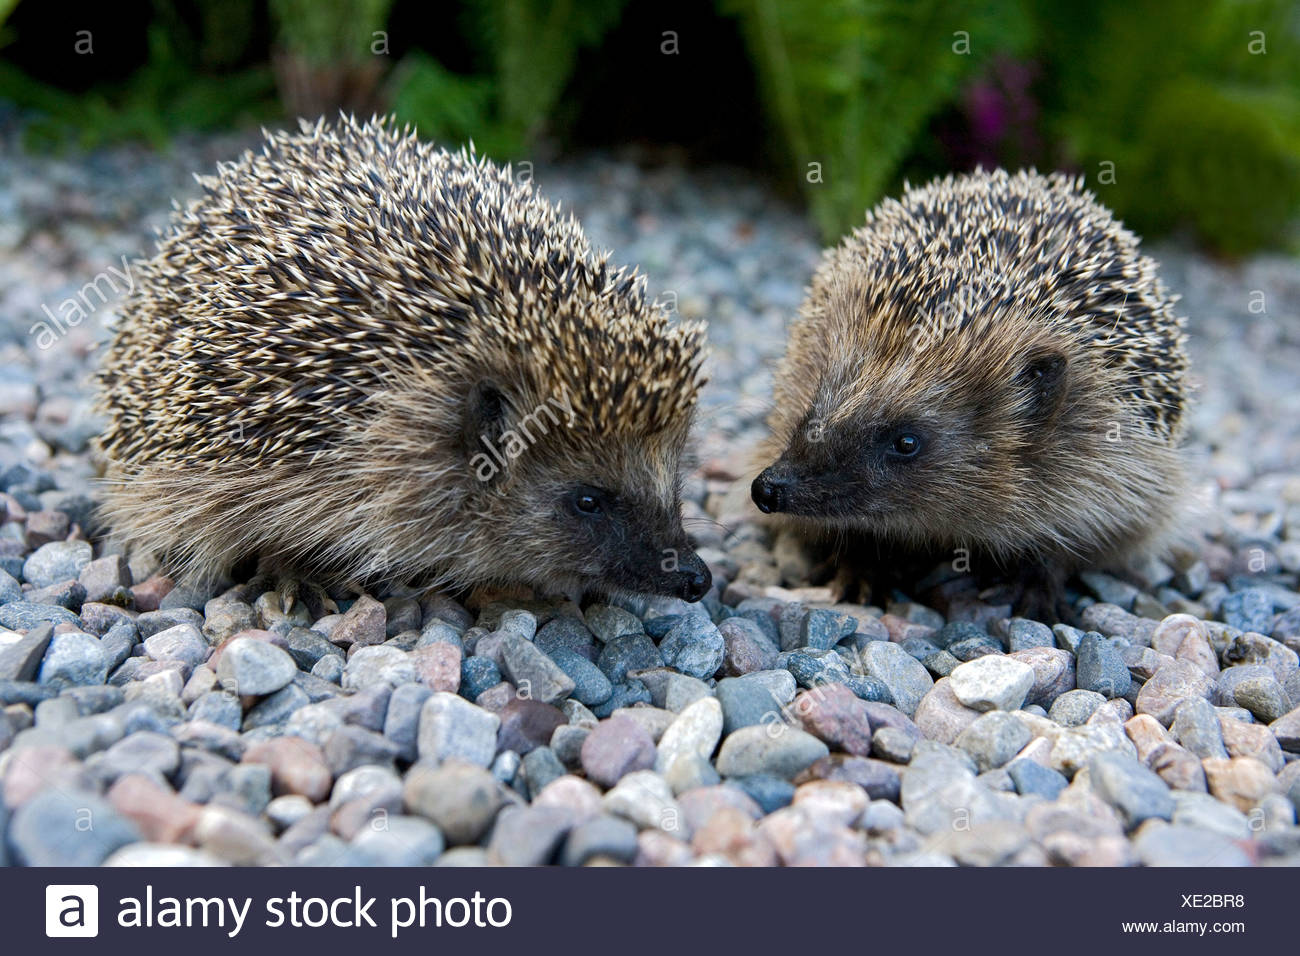 Close-up side view of two hedgehogs on stones - Stock Image